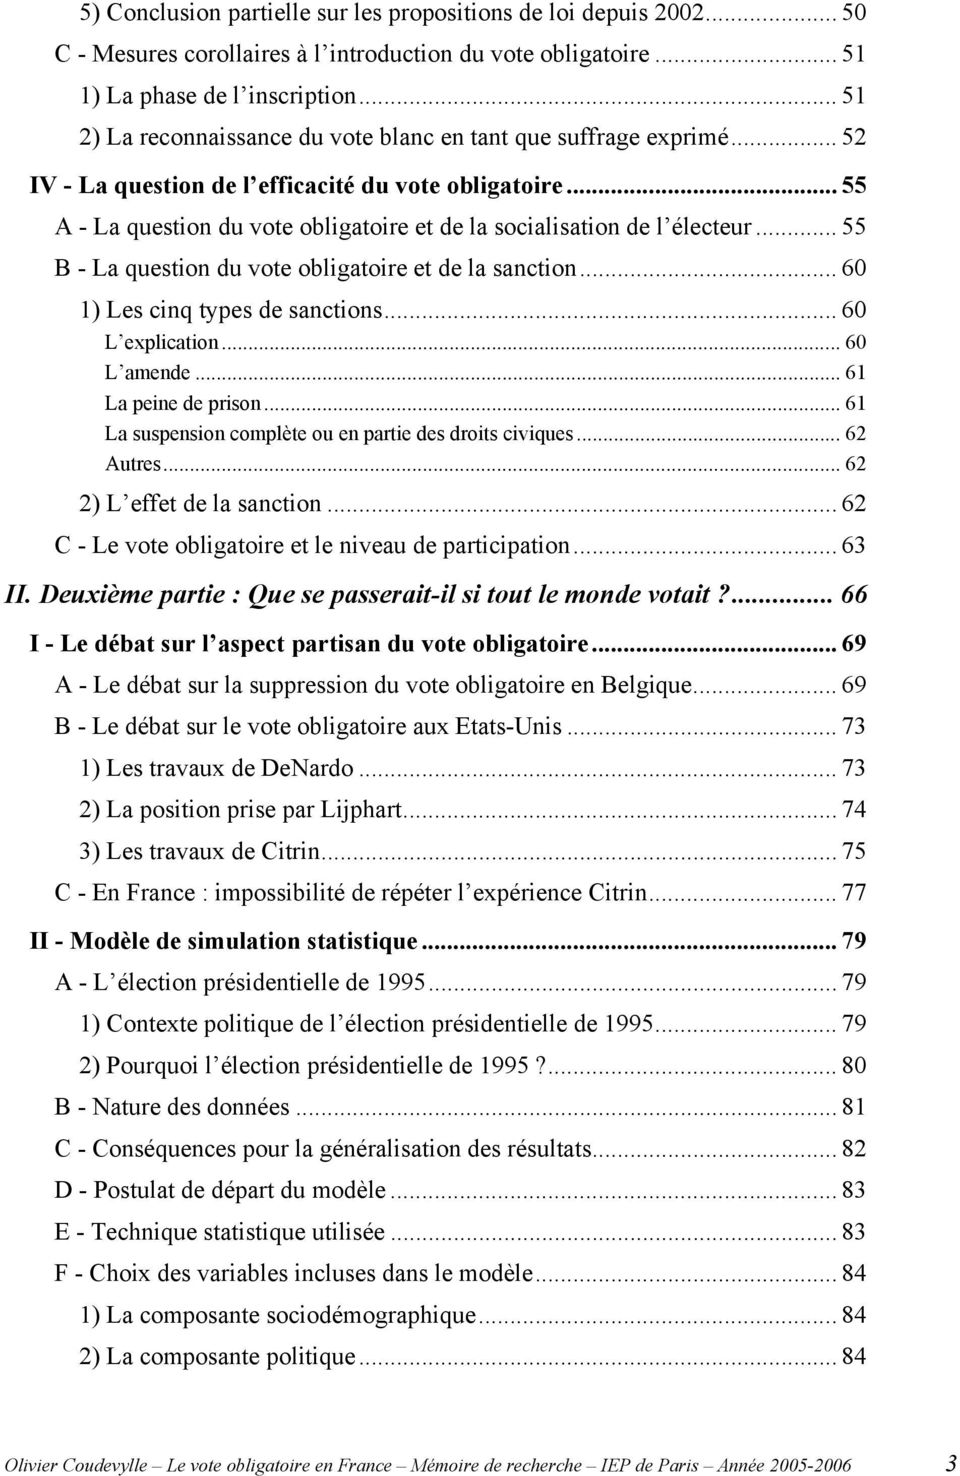 .. 55 A - La question du vote obligatoire et de la socialisation de l électeur... 55 B - La question du vote obligatoire et de la sanction... 60 1) Les cinq types de sanctions... 60 L explication.